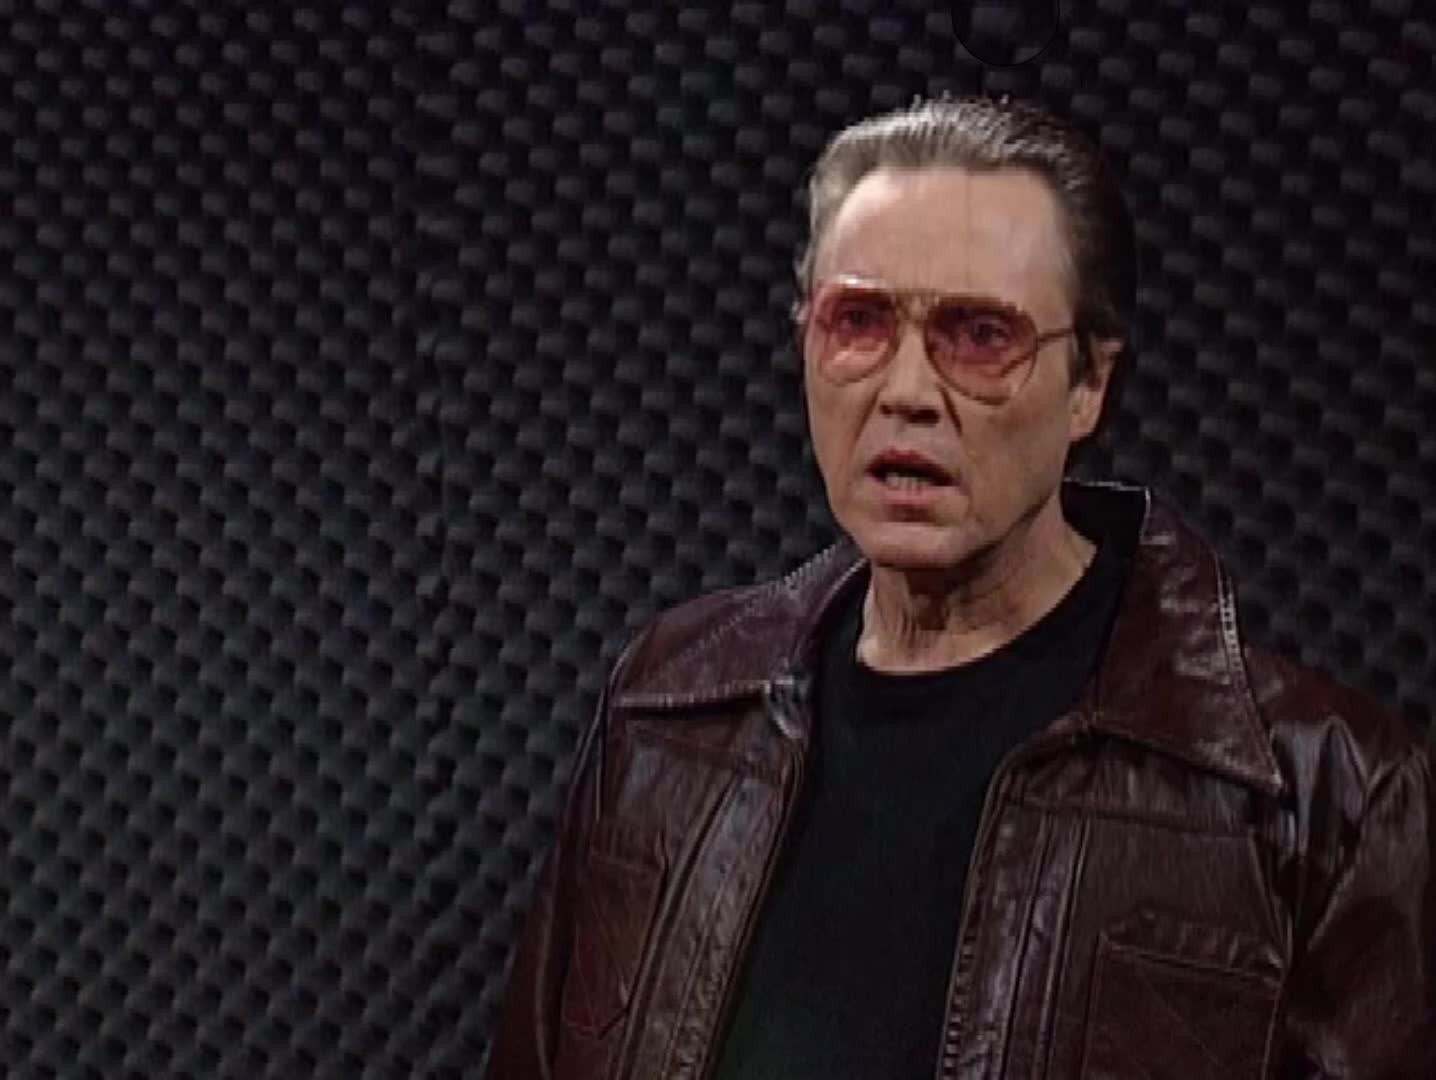 christopher walken, saturday night live, snl, television, tv, tv show, Cowbell GIFs